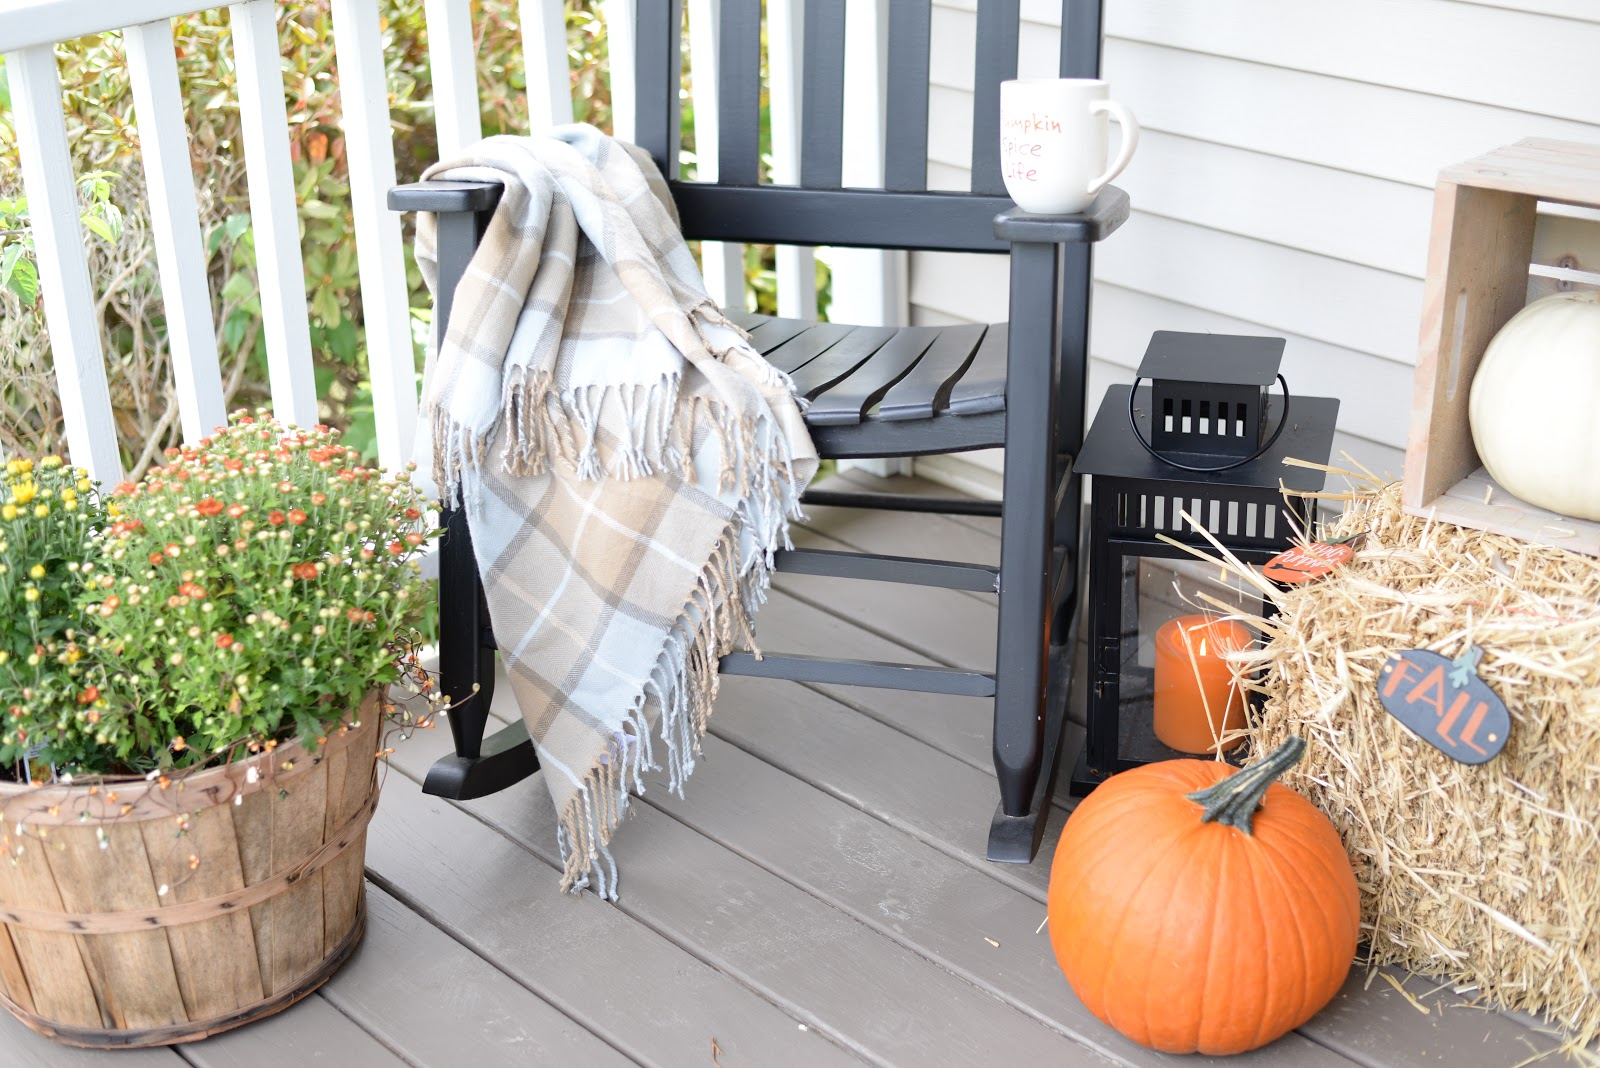 A quick and inexpensive fall decorating idea - add a cozy blanket anywhere!